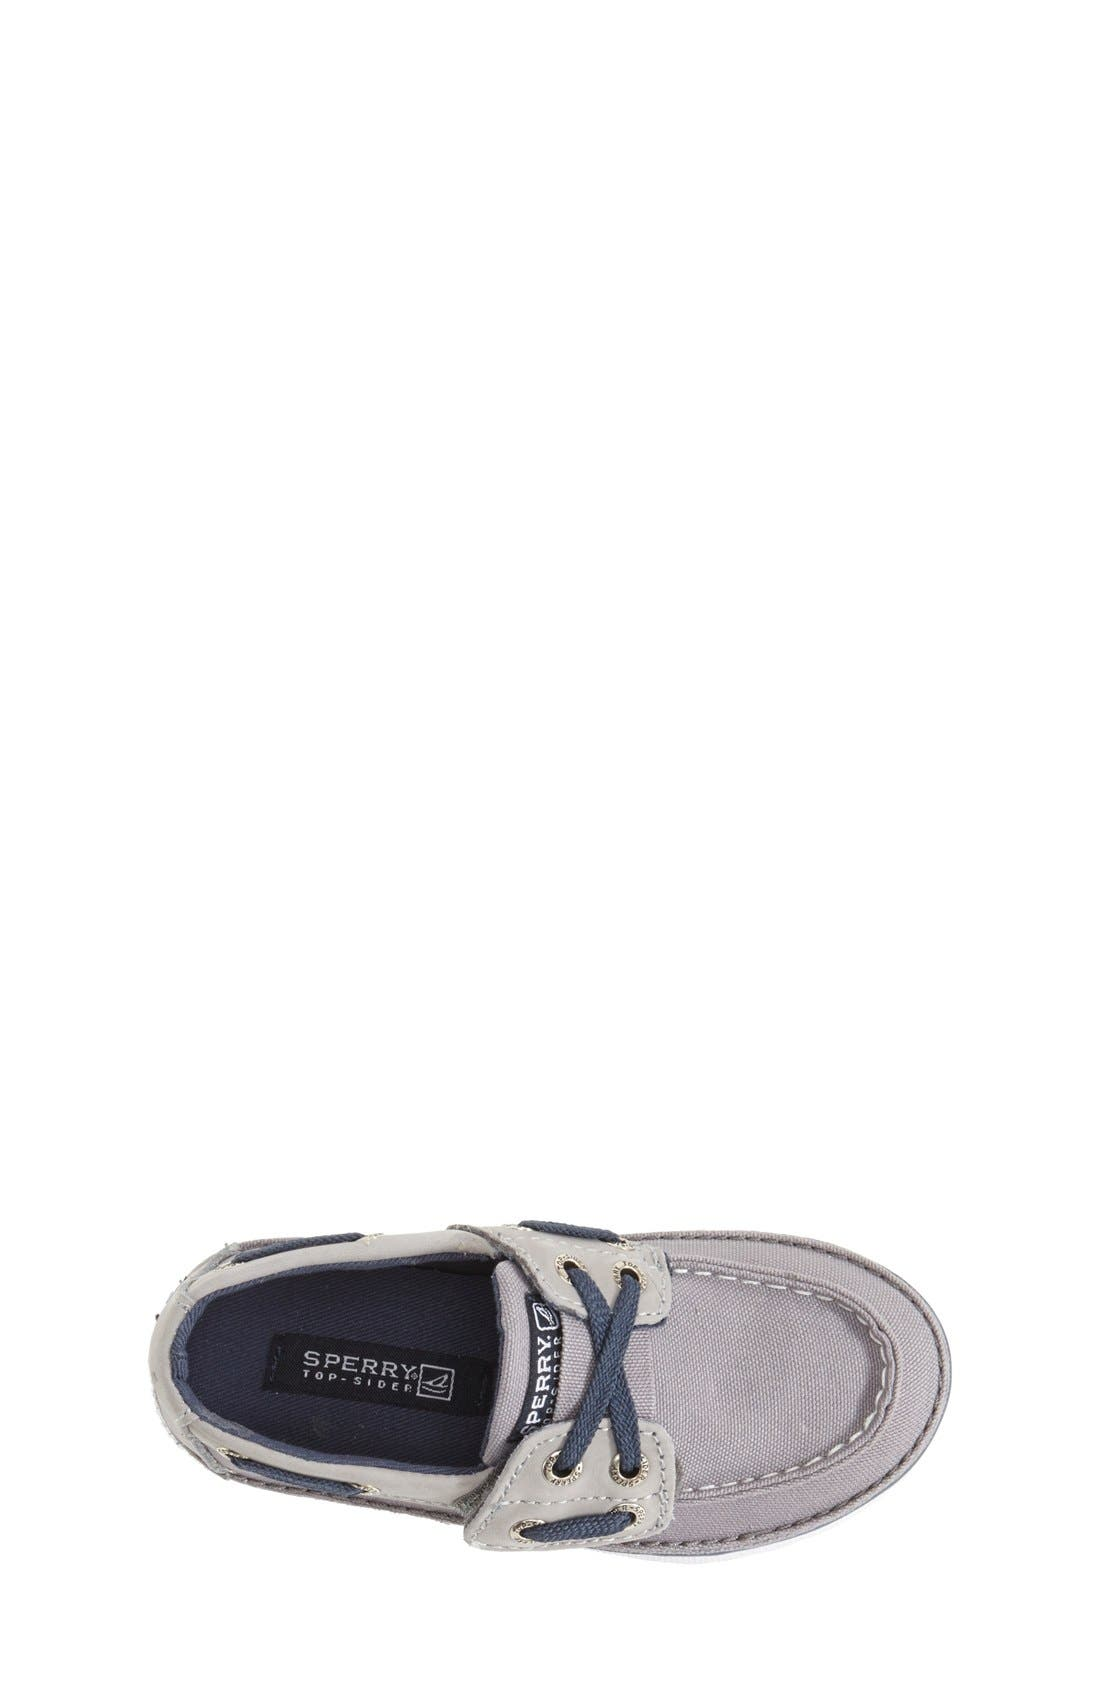 Alternate Image 3  - Sperry Kids 'Cruz Jr.' Slip-On Boat Shoe (Walker & Toddler)